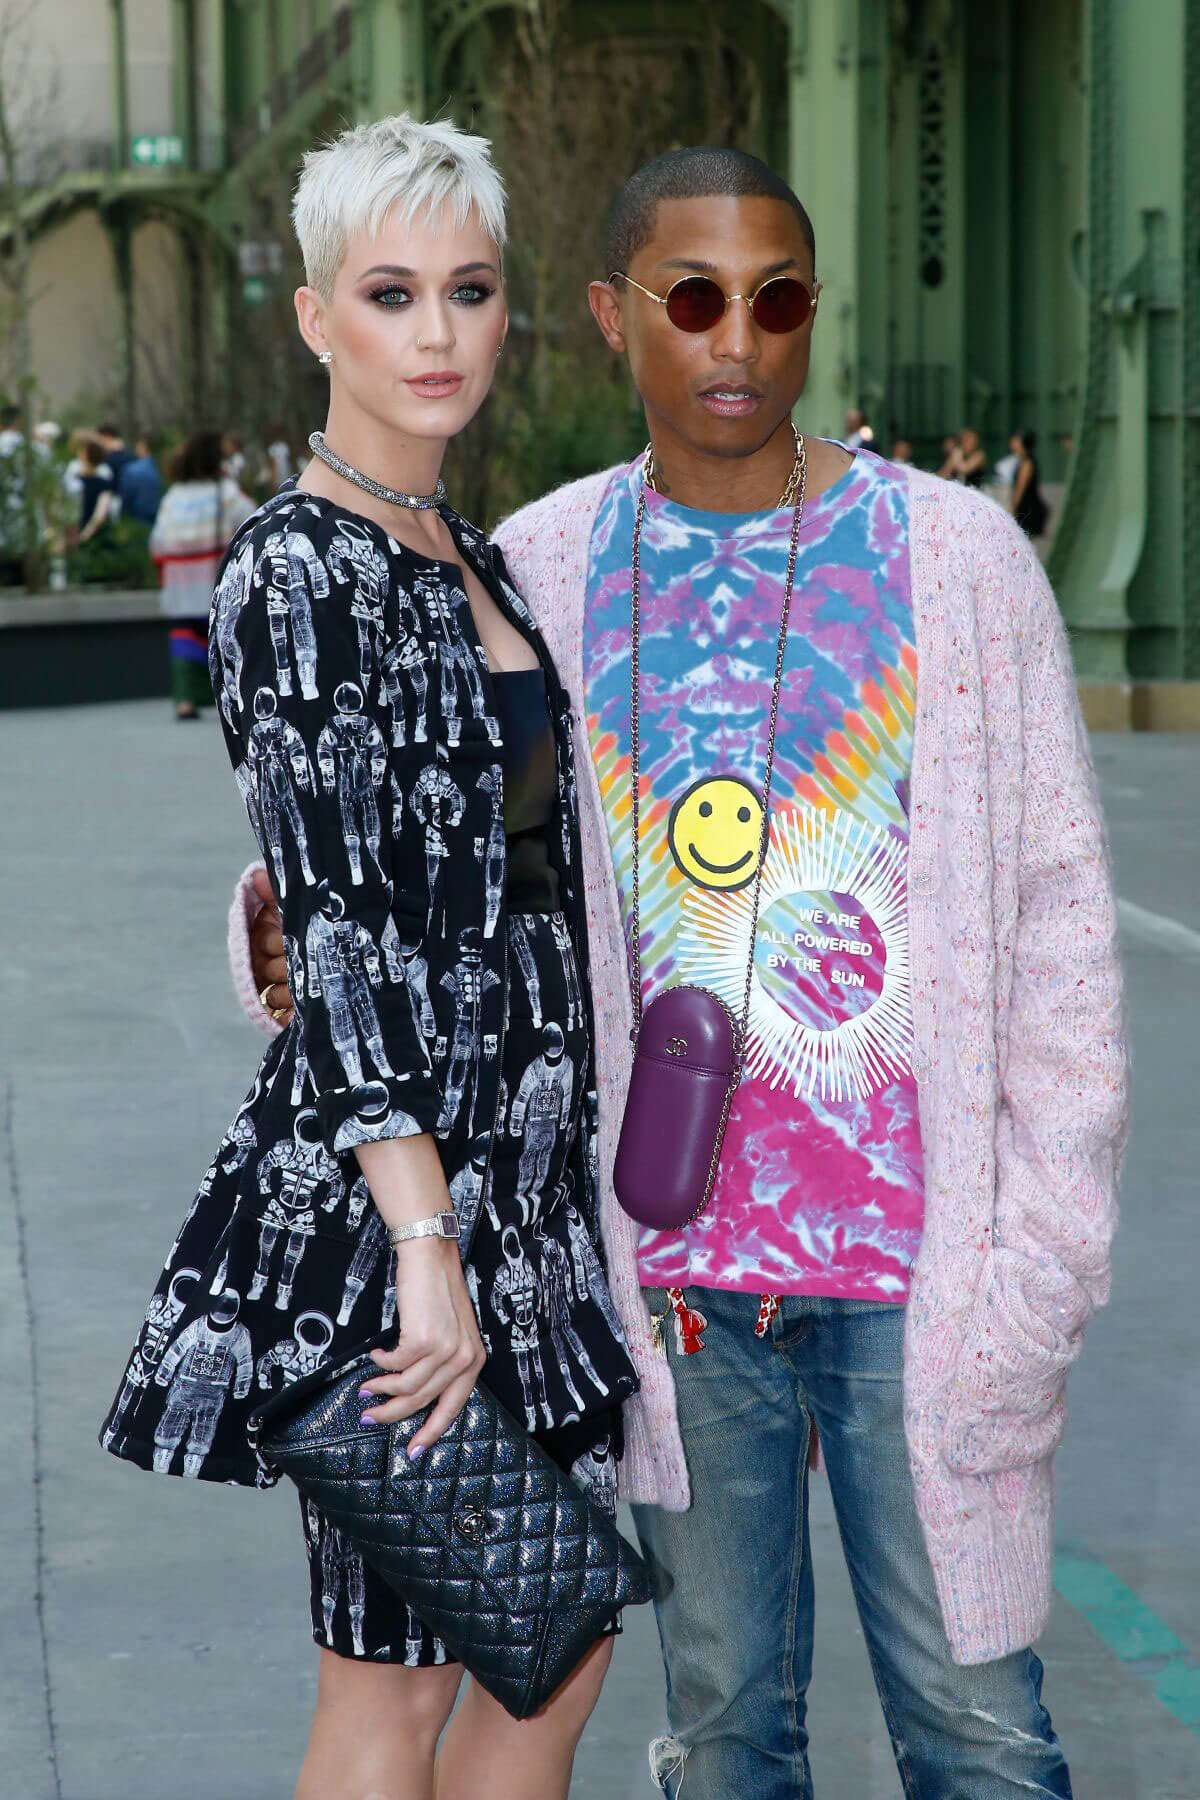 Katy Perry and Pharrell Williams Stills at Chanel Fashion Show in Paris